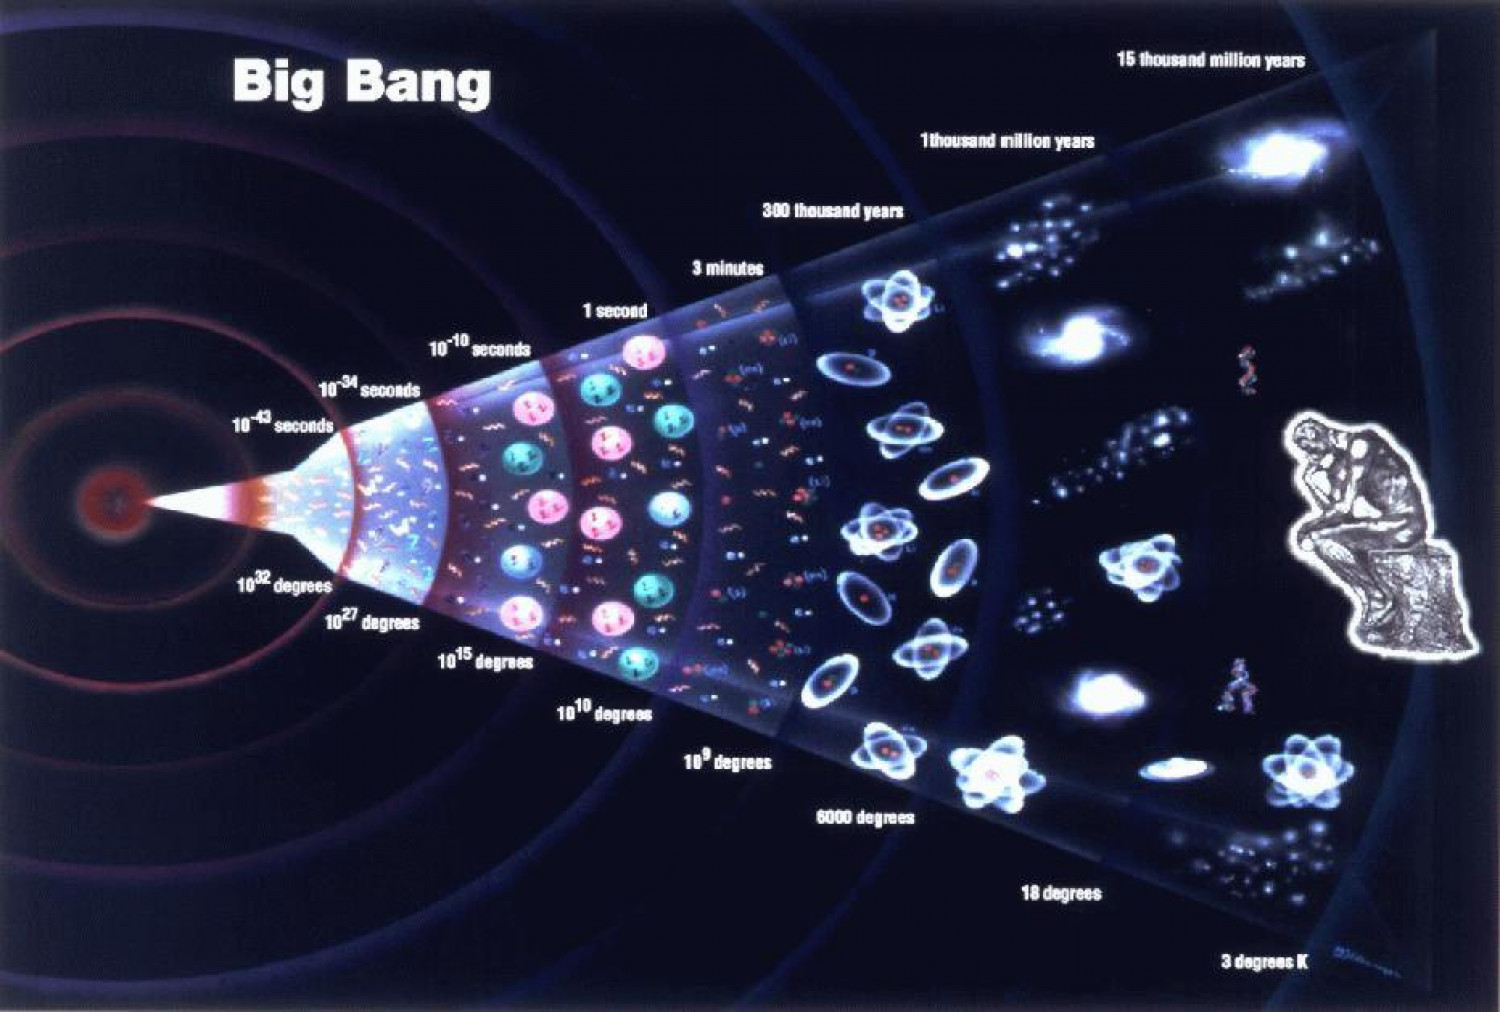 Big Bang Infographic